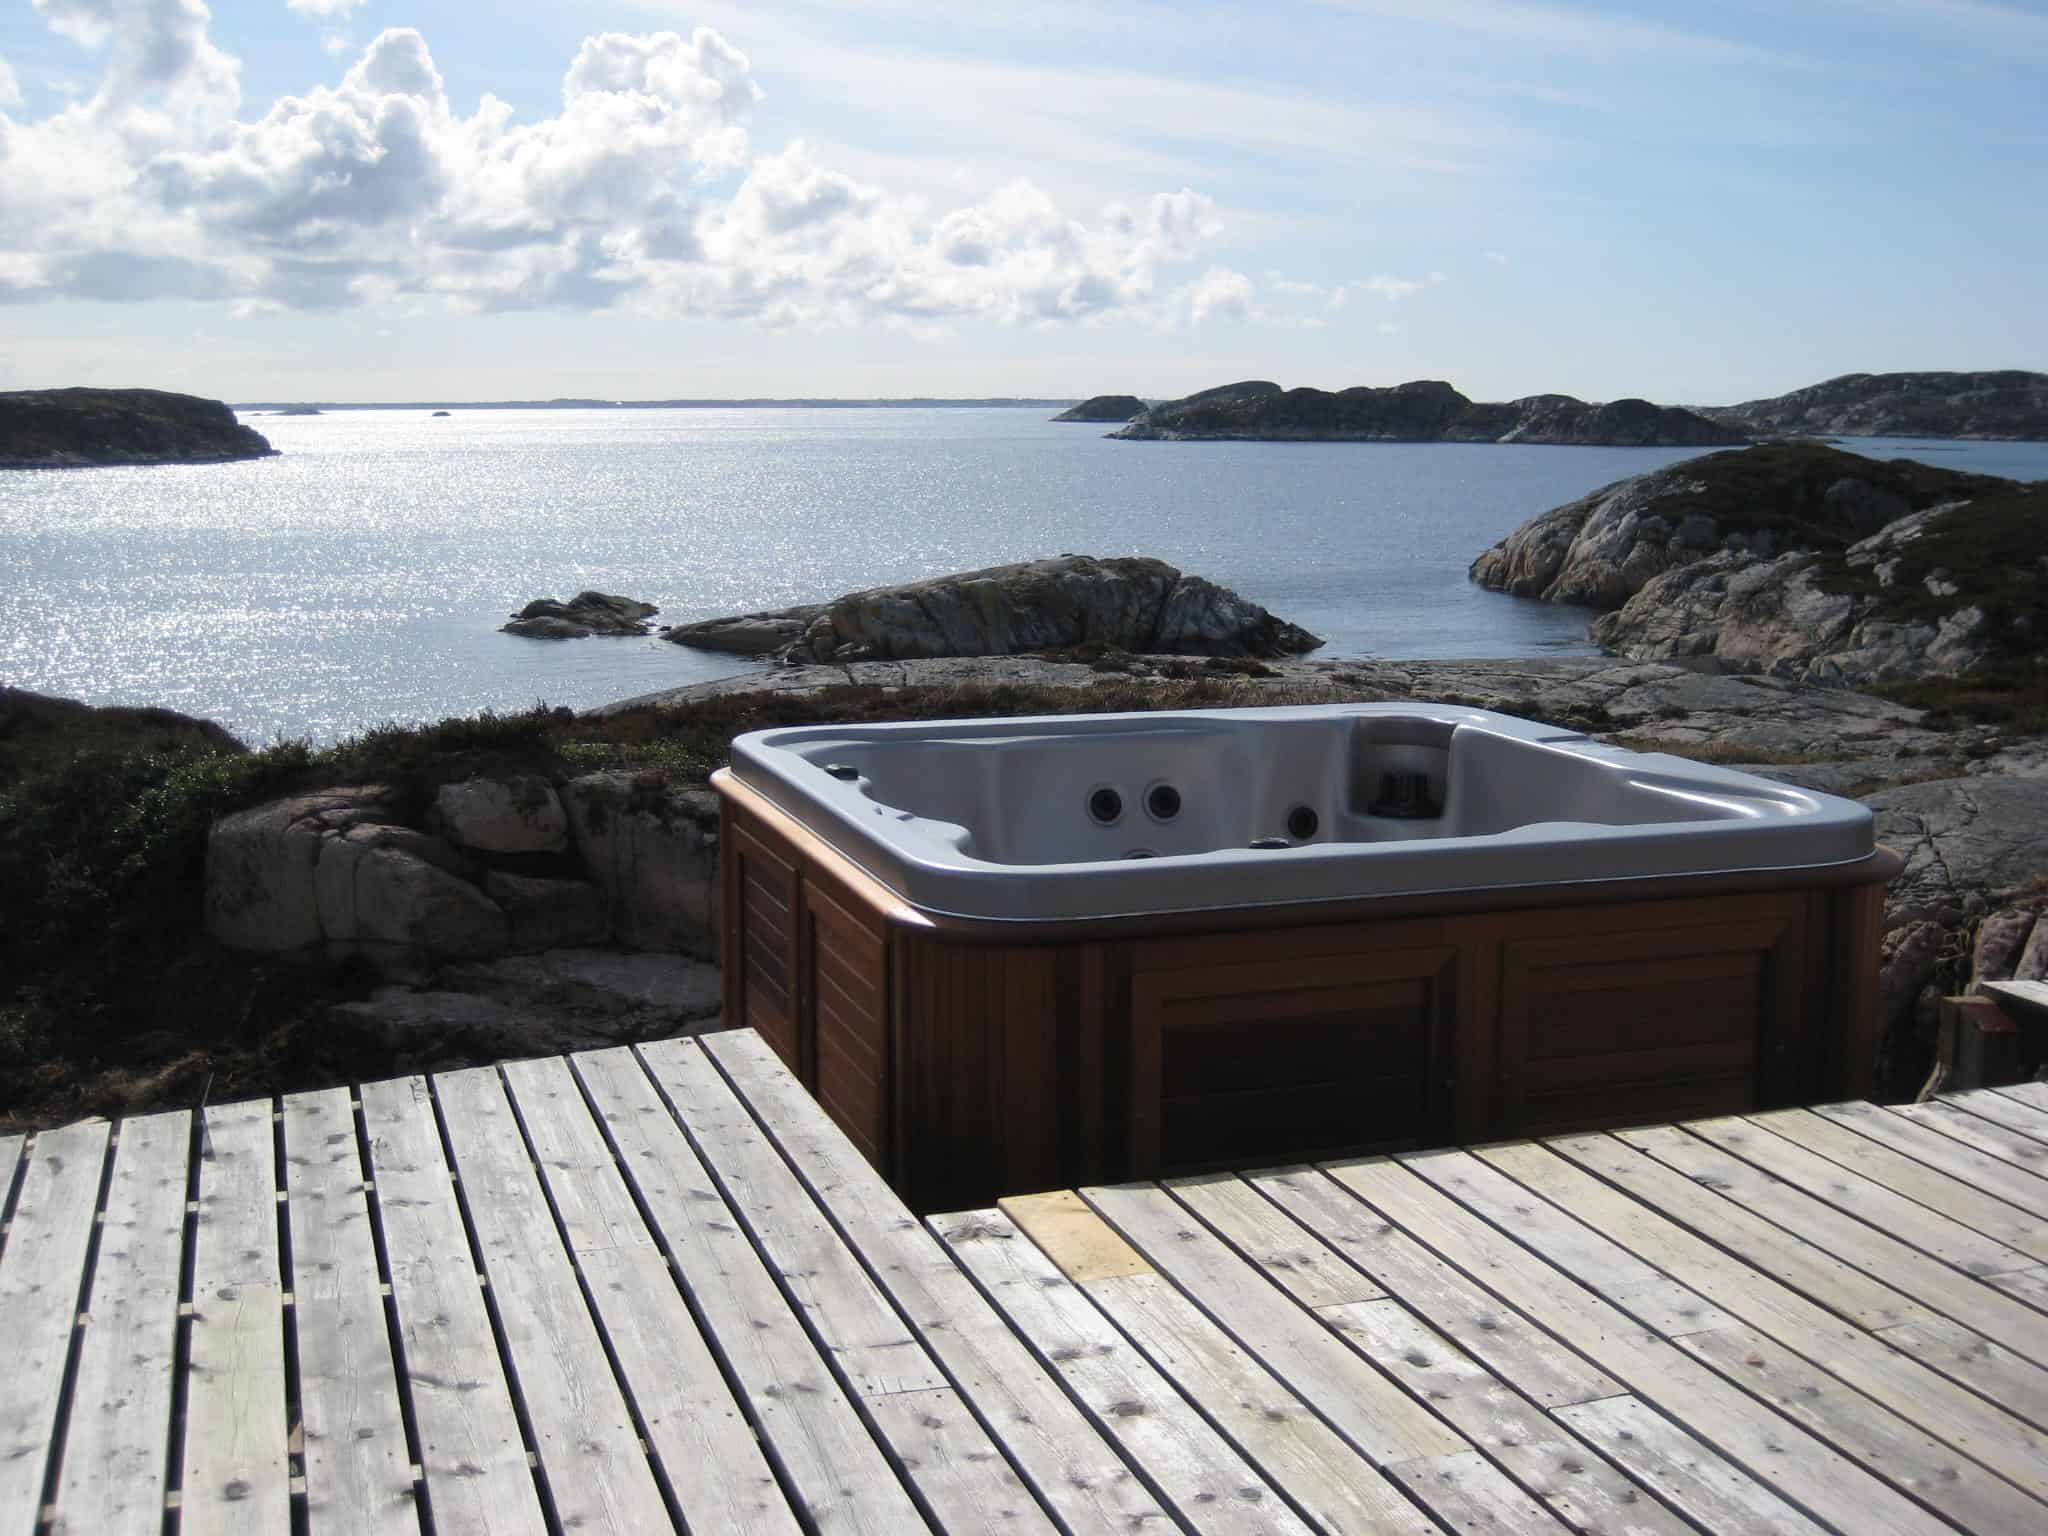 Arctic Spas Hot tub in the backyard close to a lake